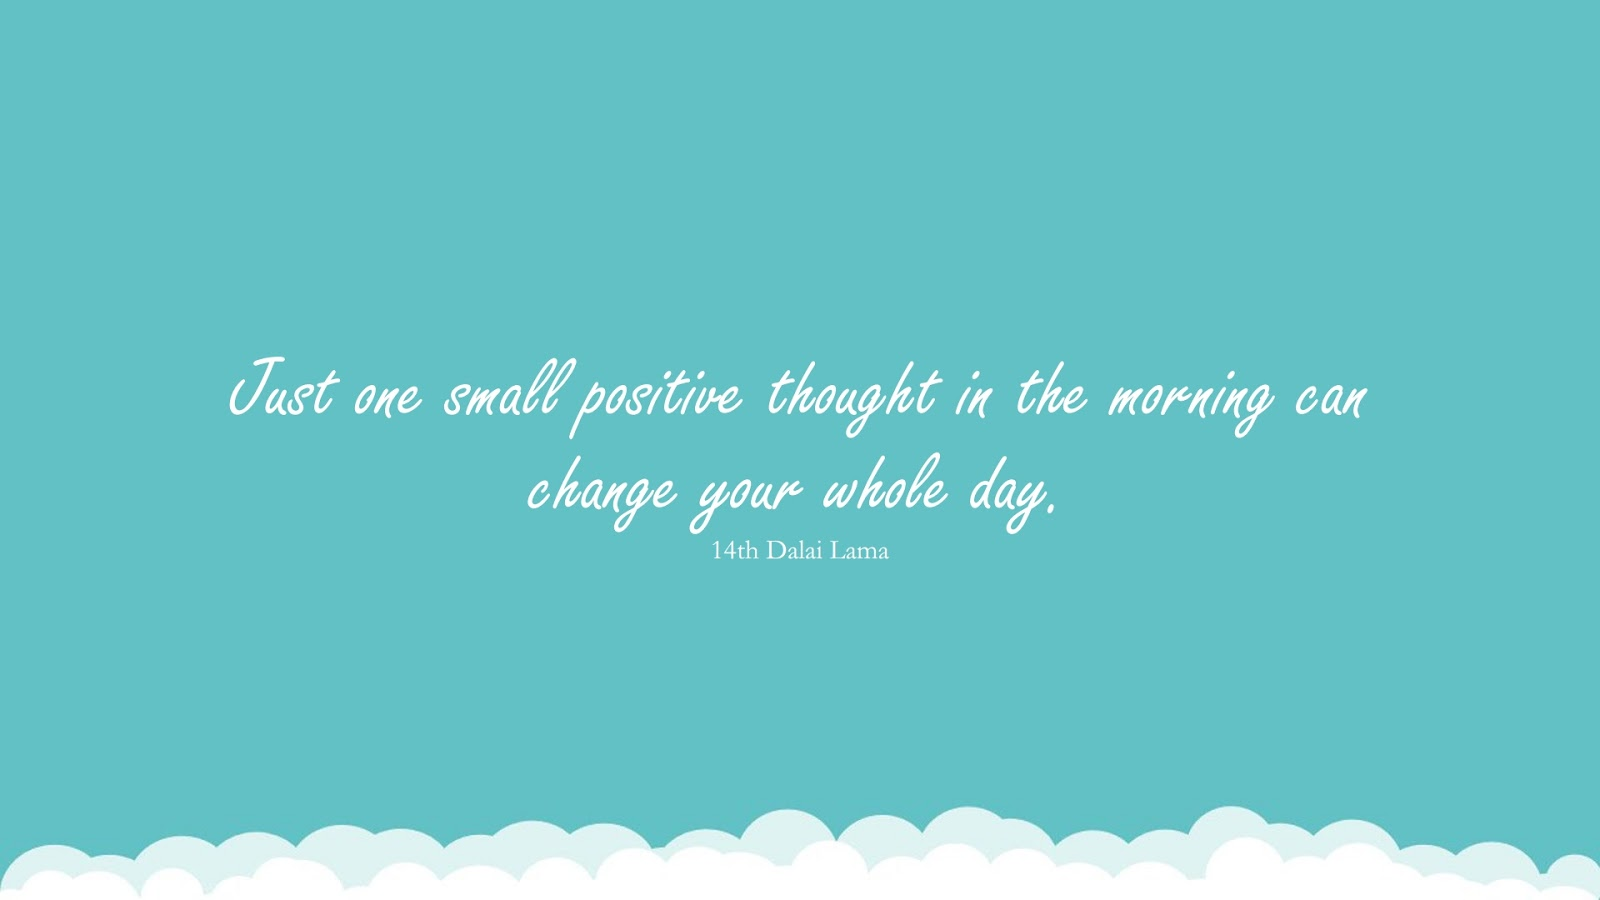 Just one small positive thought in the morning can change your whole day. (14th Dalai Lama);  #EncouragingQuotes